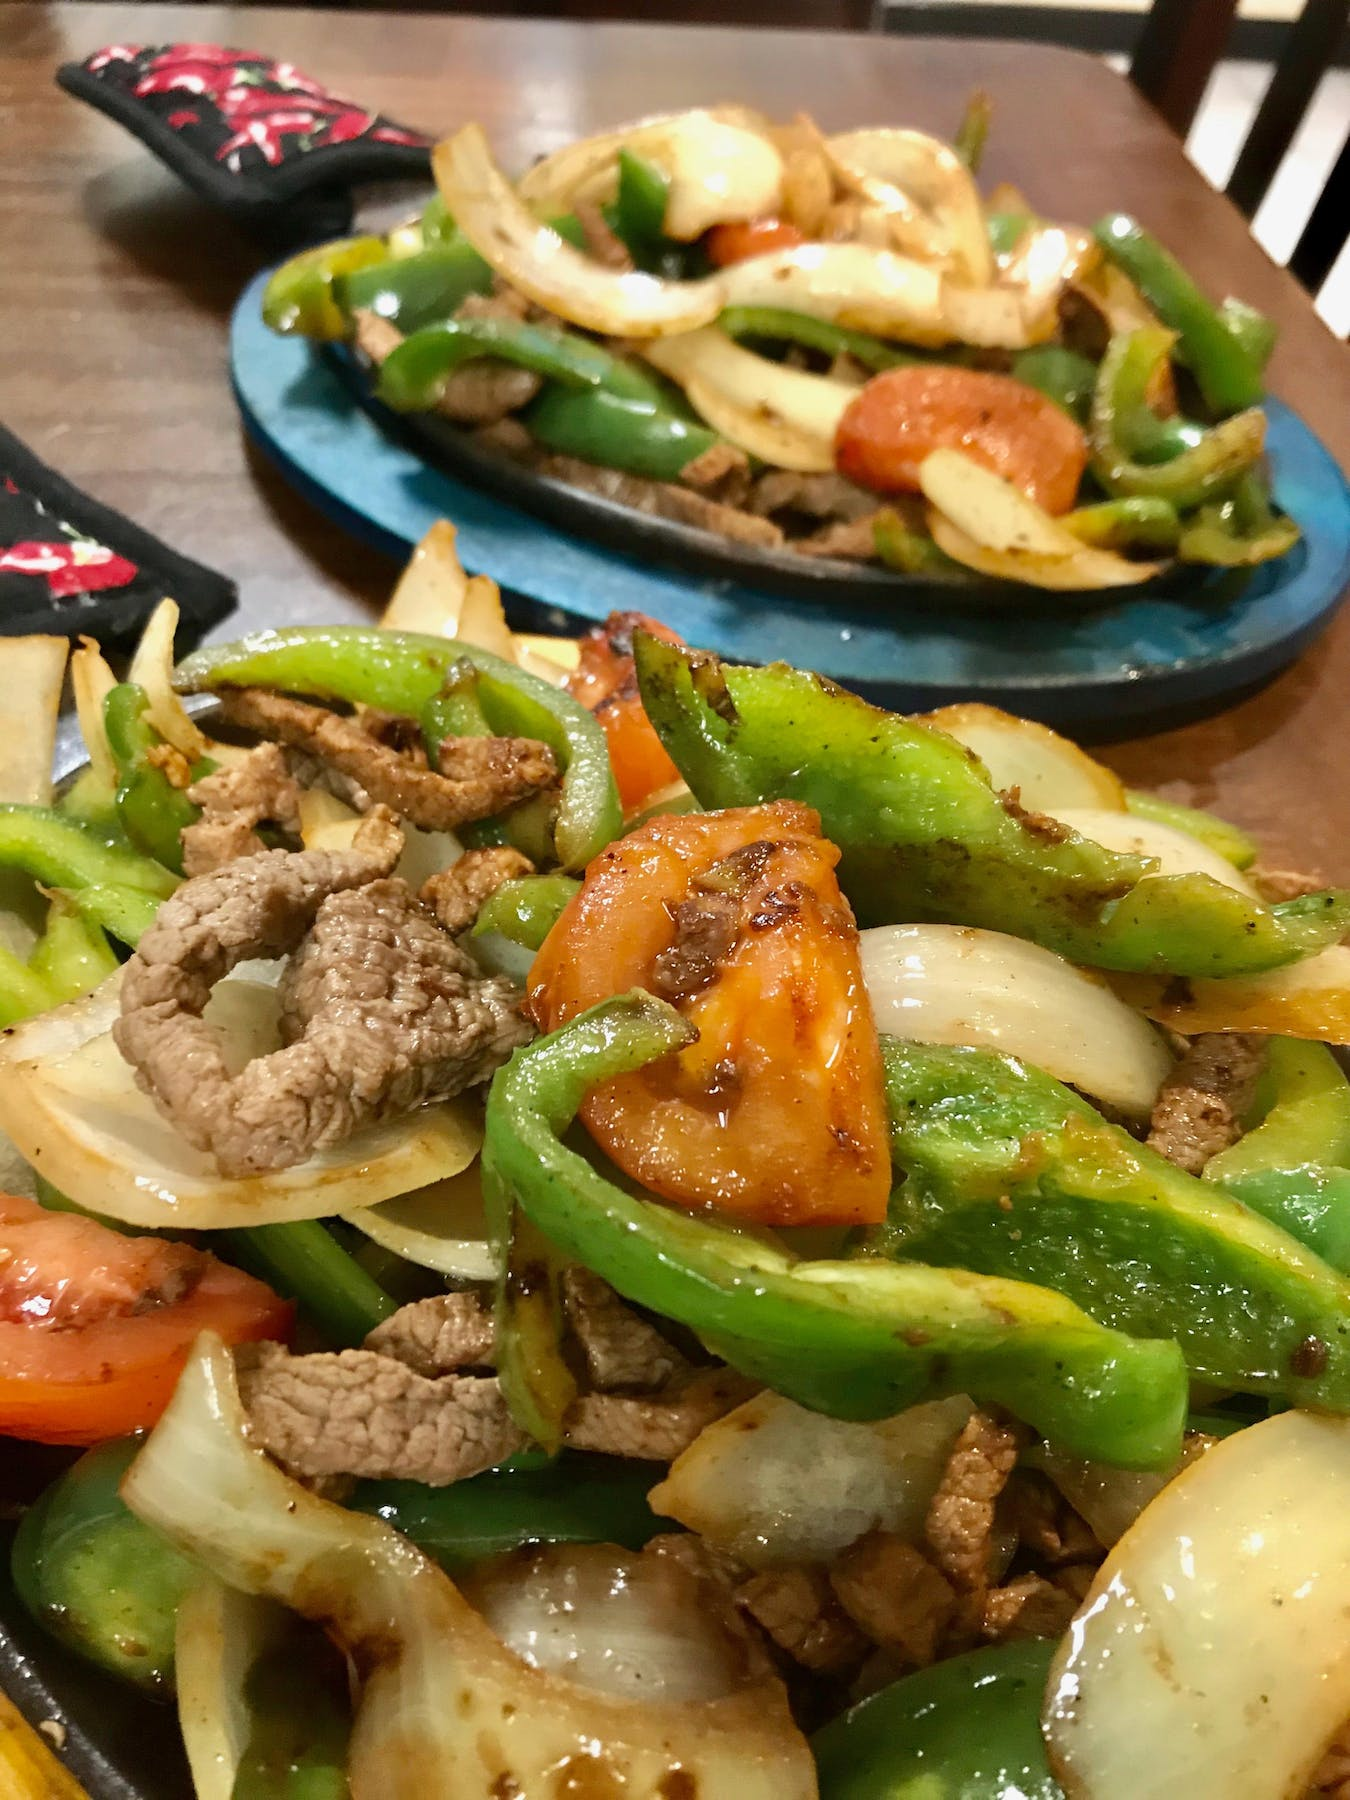 a plate of fajitas and greens